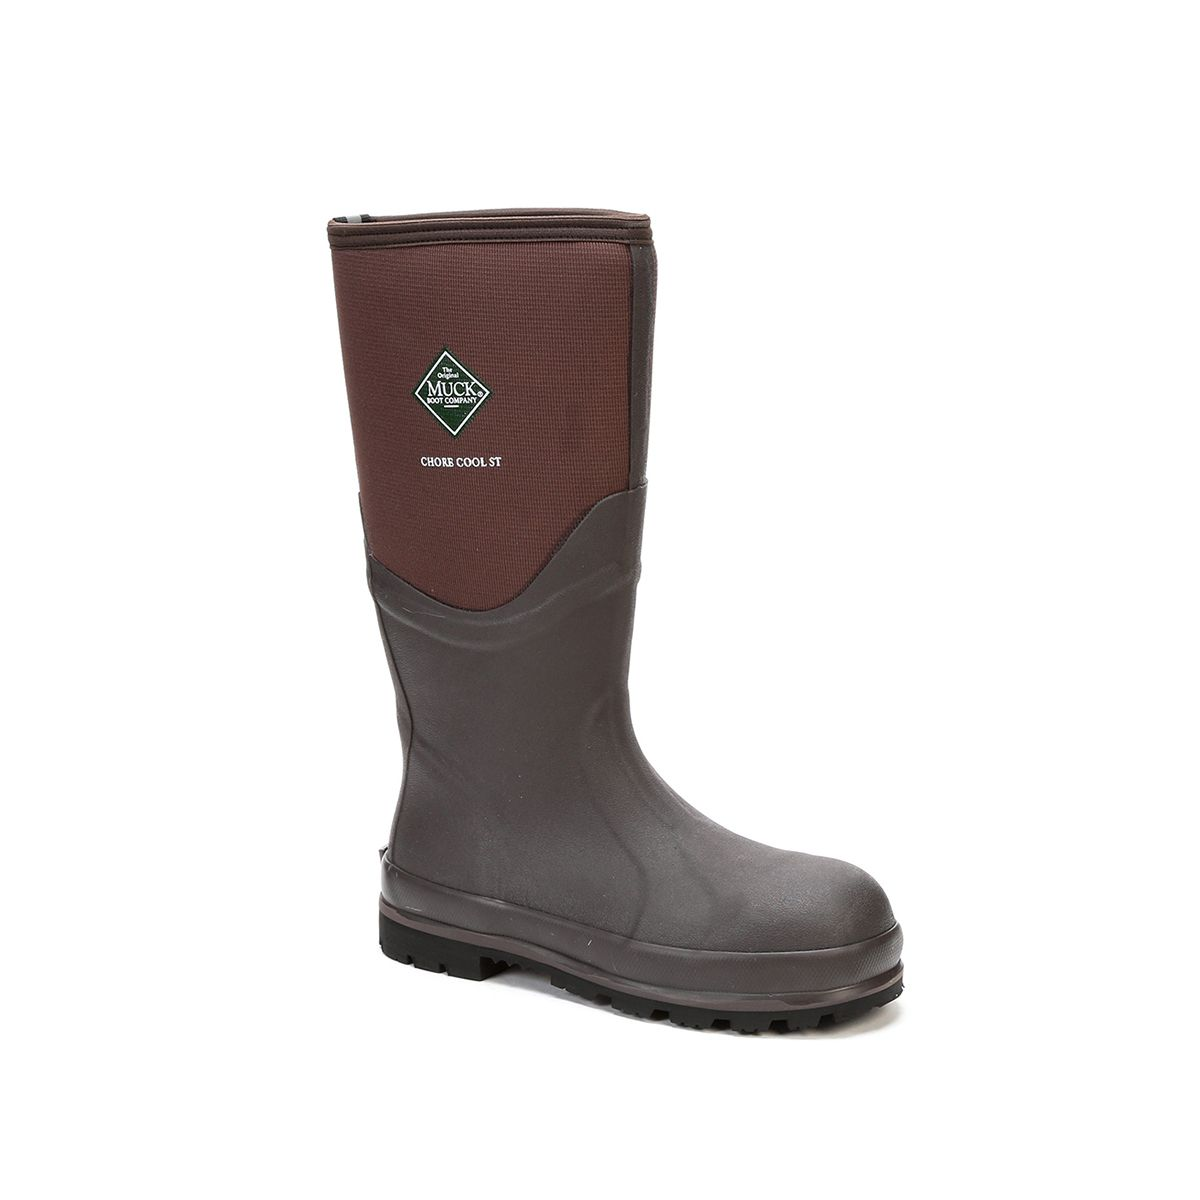 cb6d33c566b Details about Muck Boots Company Adult Men's/Women's CHORE COOL SAFETY  STEEL TOE, BROWN